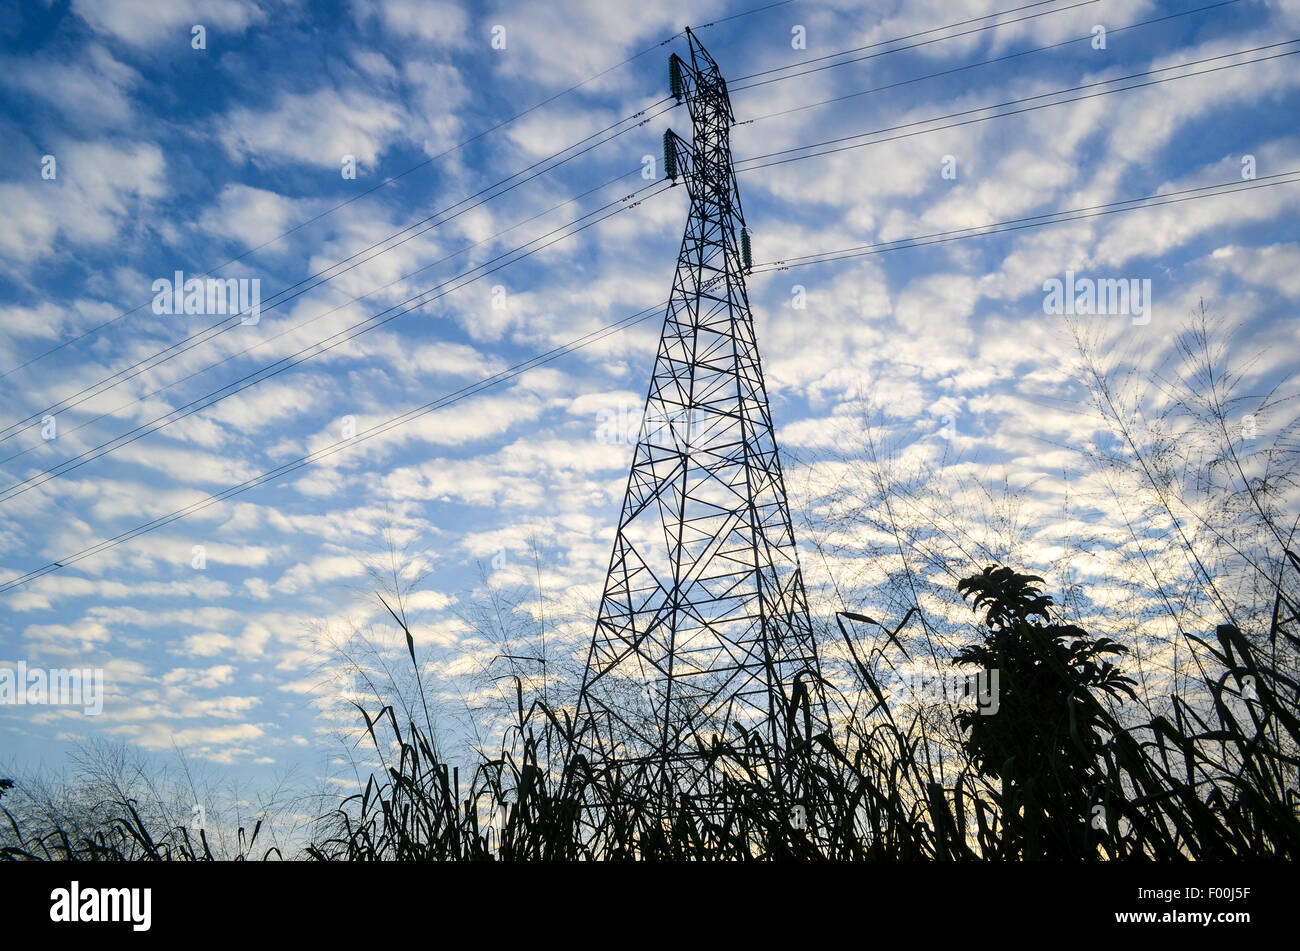 Electric pylon at sunset in rural Africa (Ghana) against a background of clouds - Stock Image